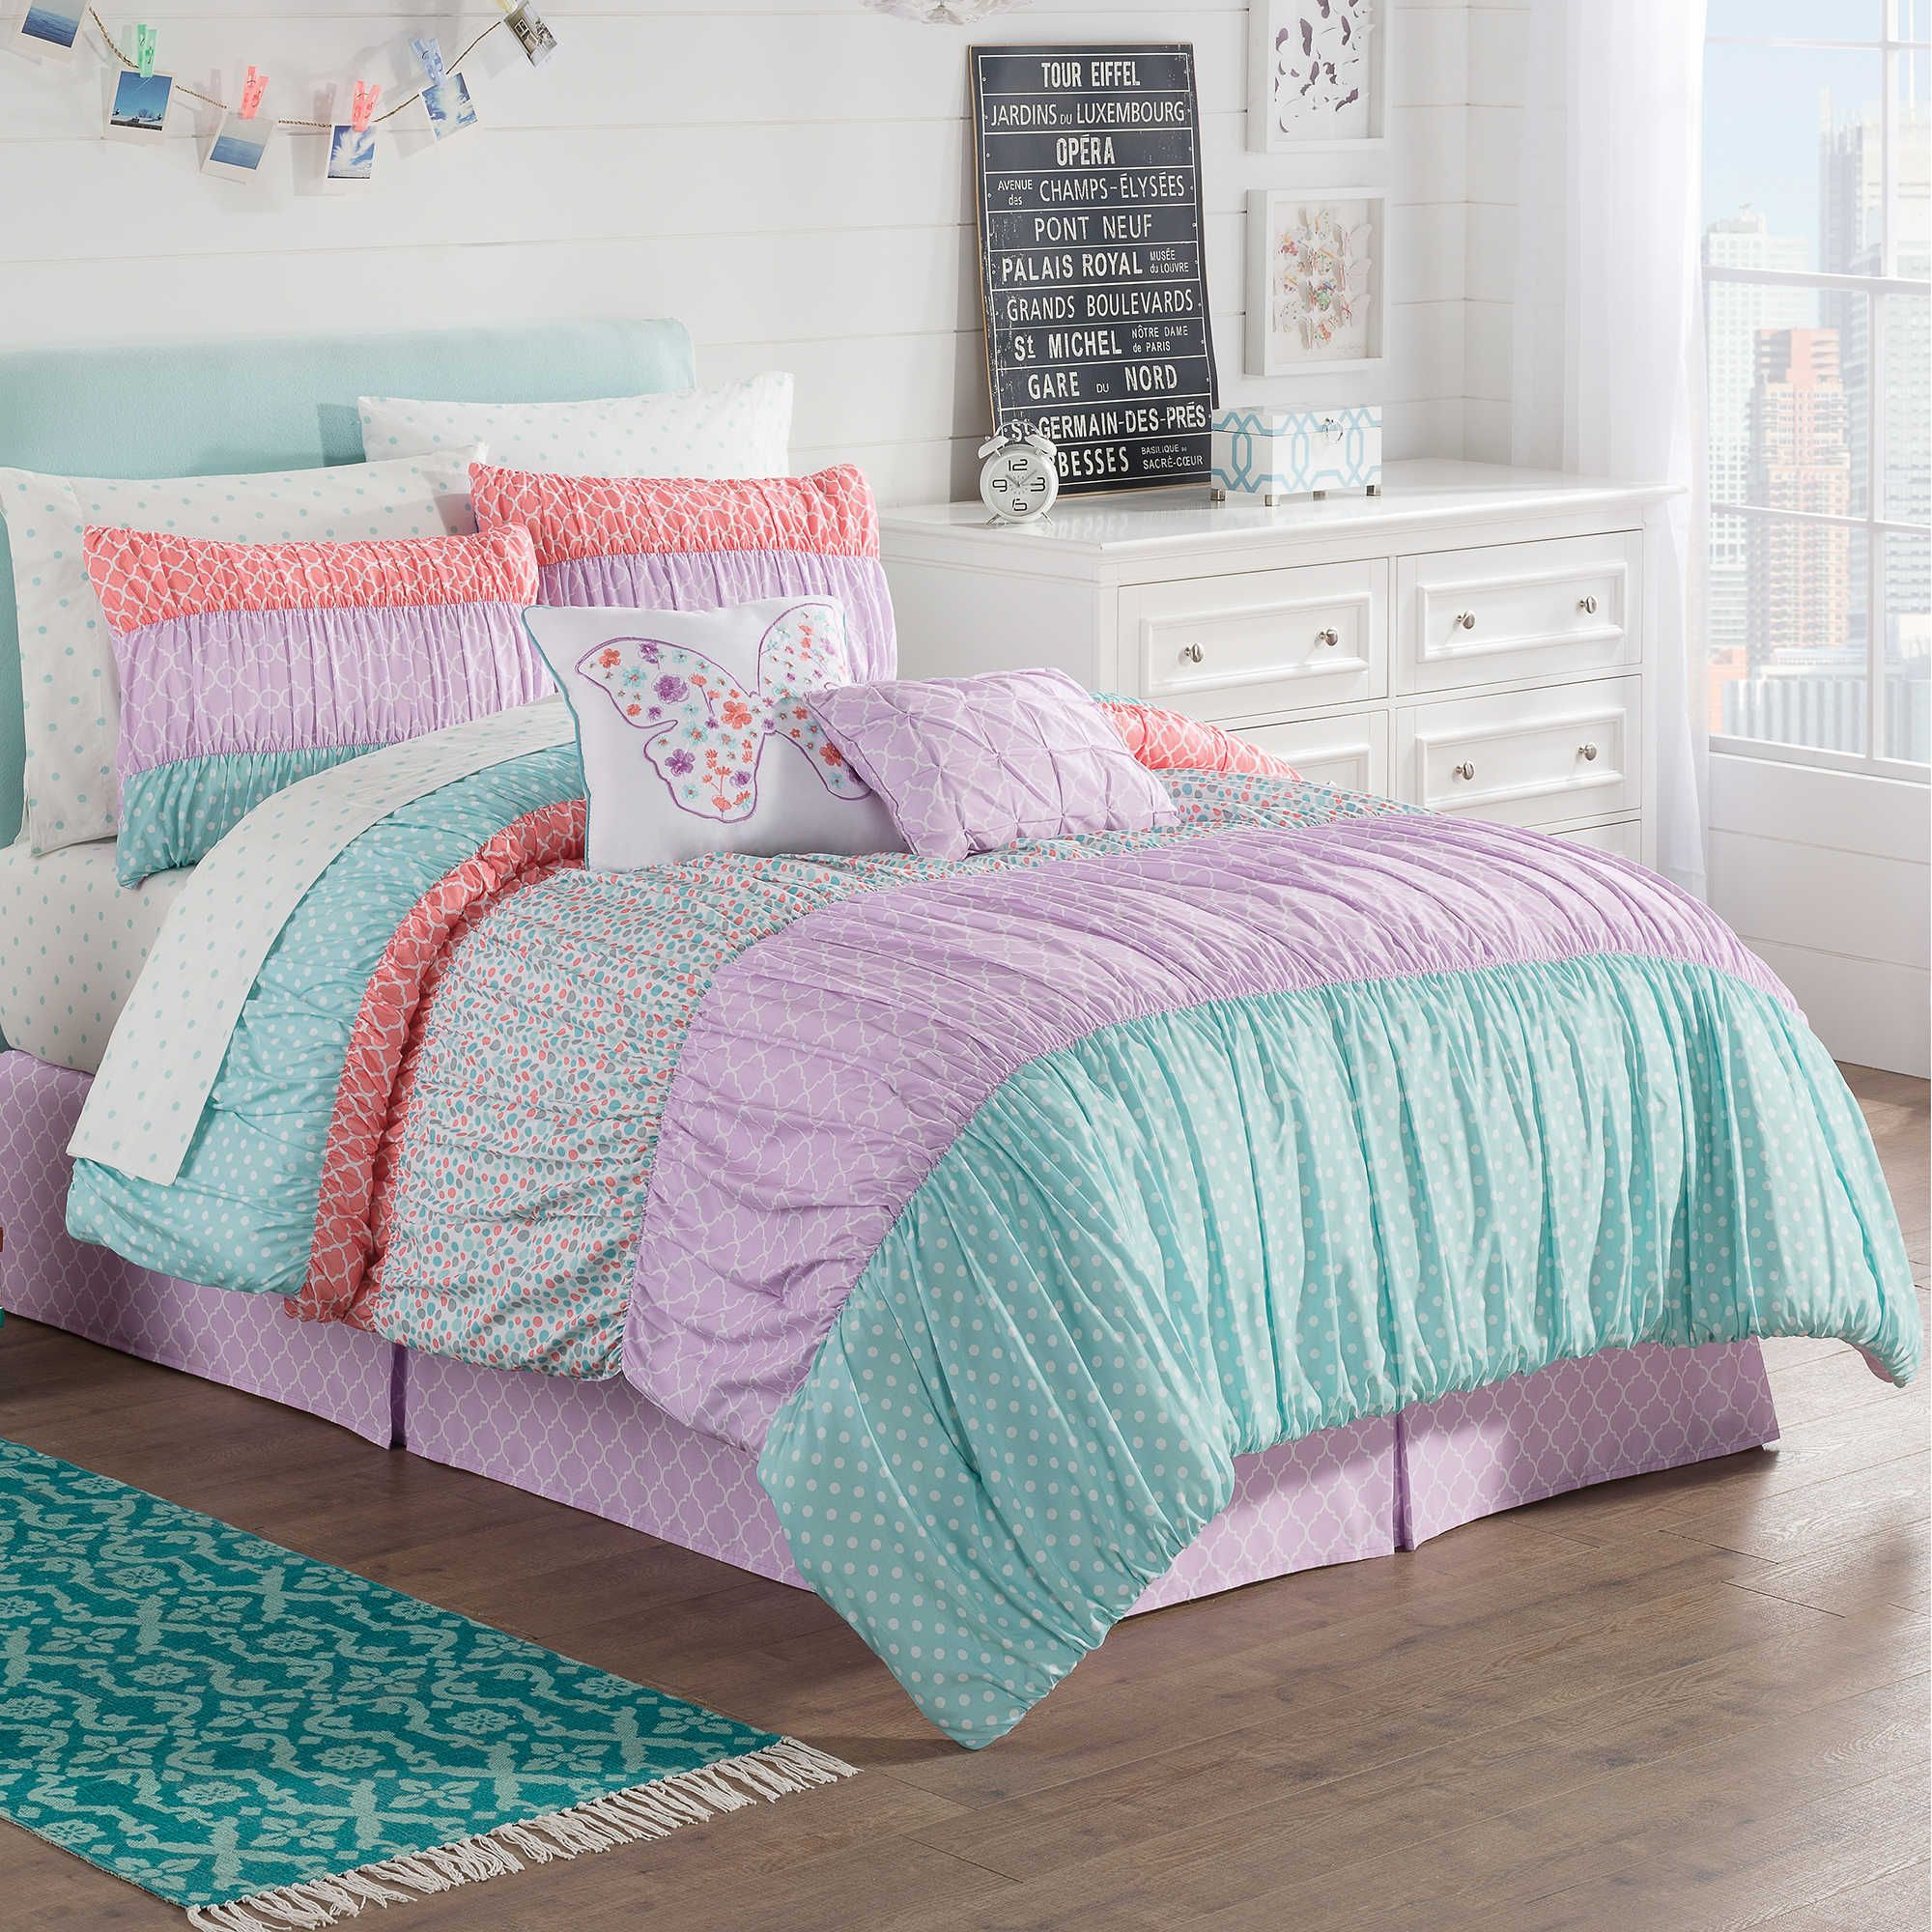 cute size comforter l view sets pcs twin aprar girls bedding larger inspirations kids ideas for